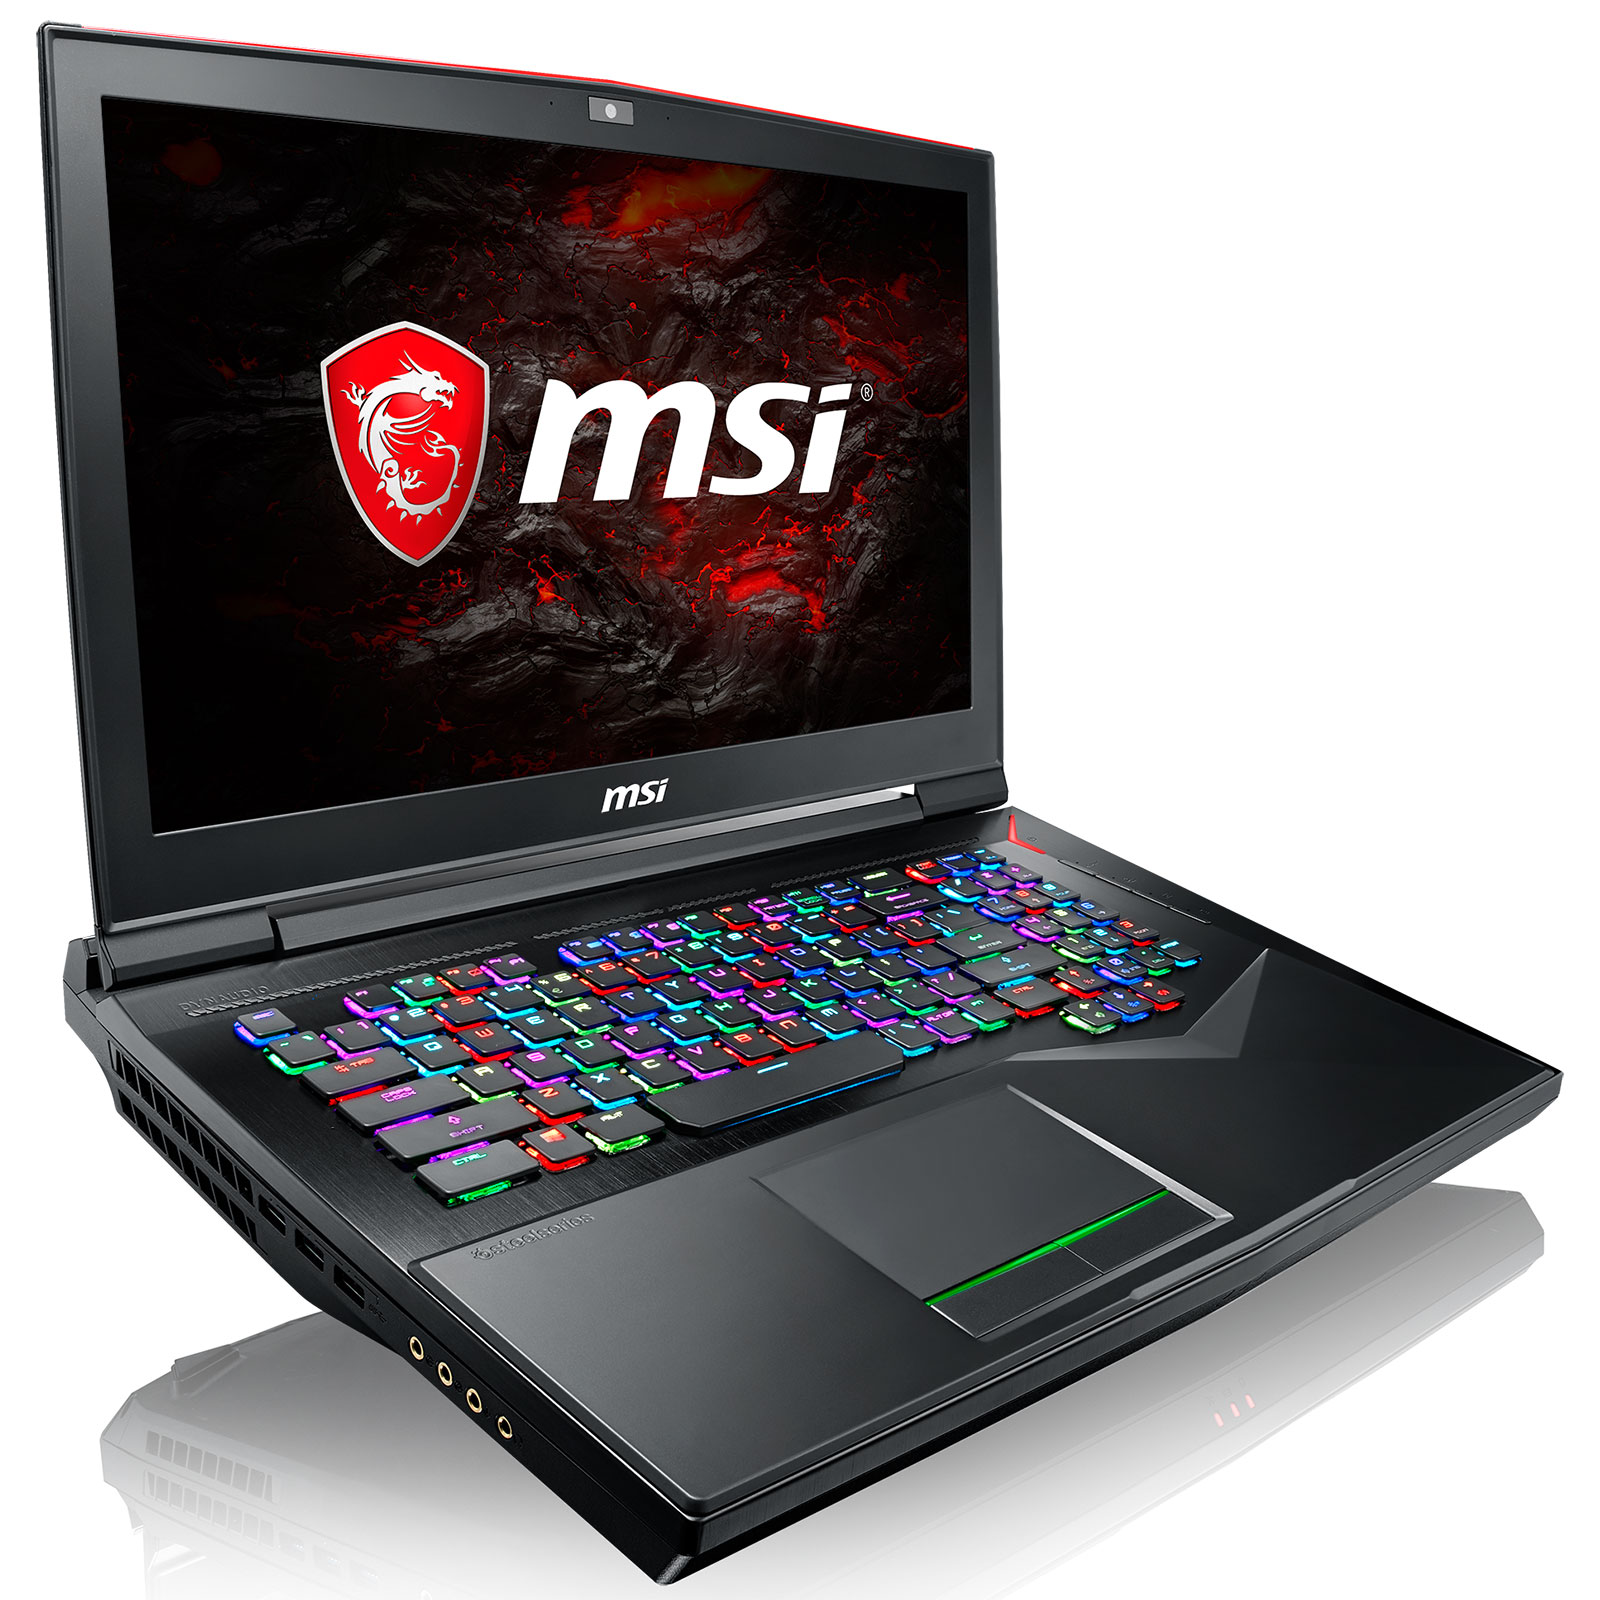 msi gt75vr 7re 064fr titan pc portable msi sur. Black Bedroom Furniture Sets. Home Design Ideas